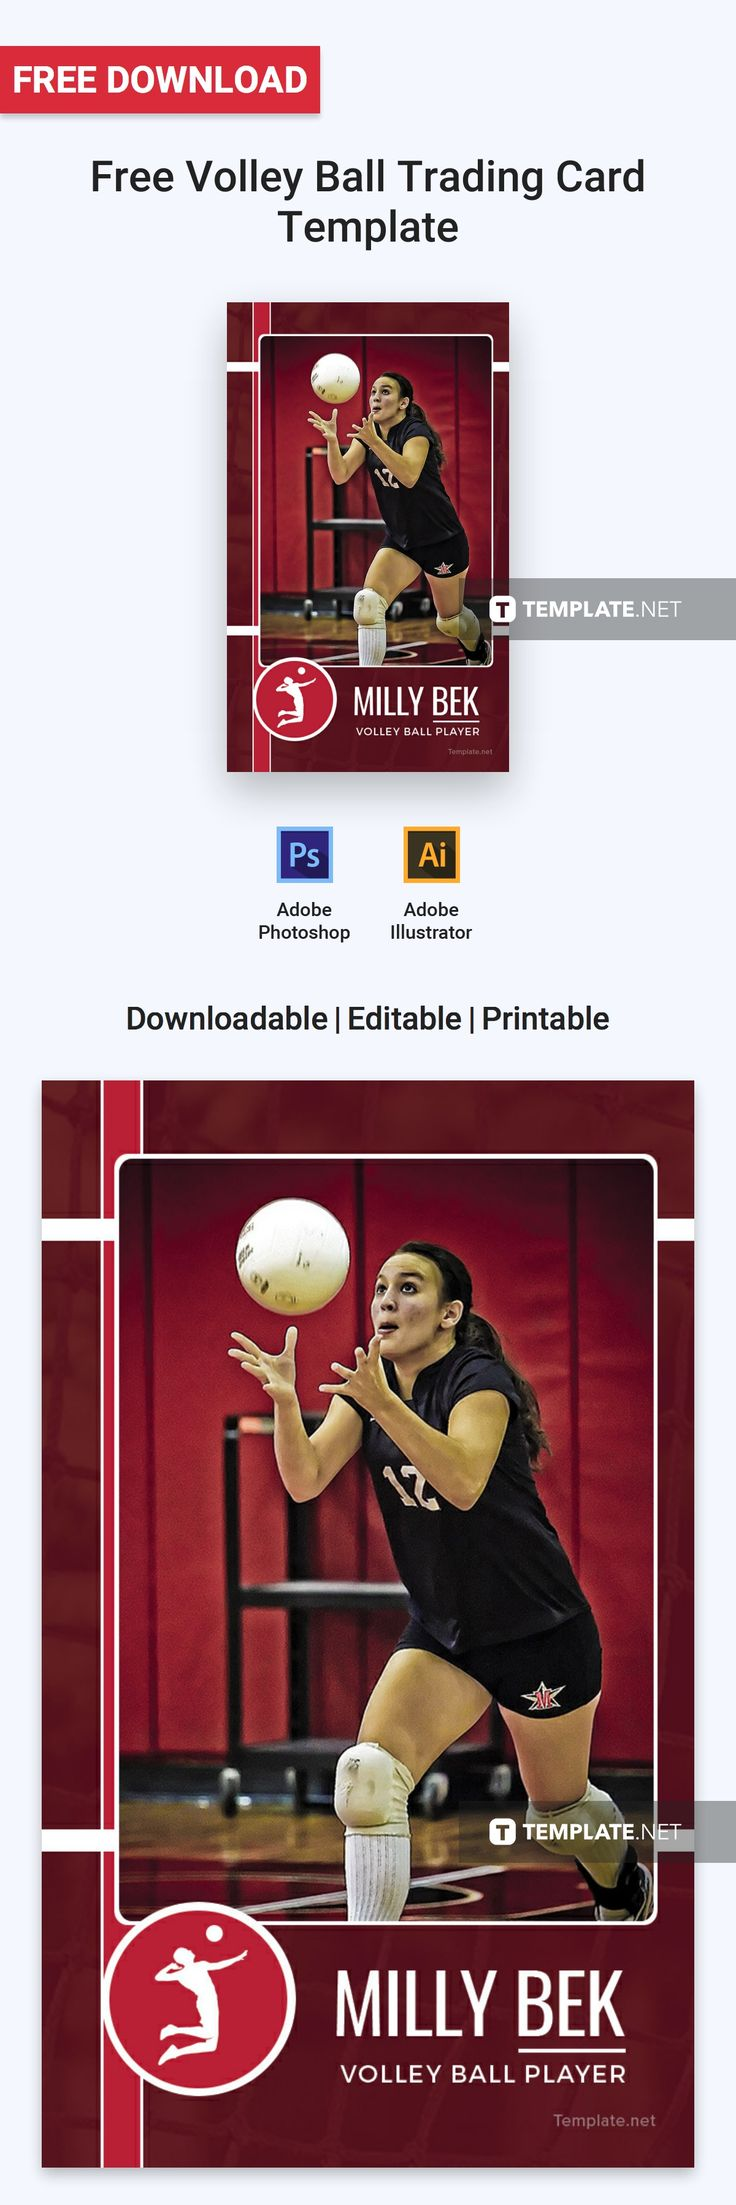 Free volley ball trading card trading card template